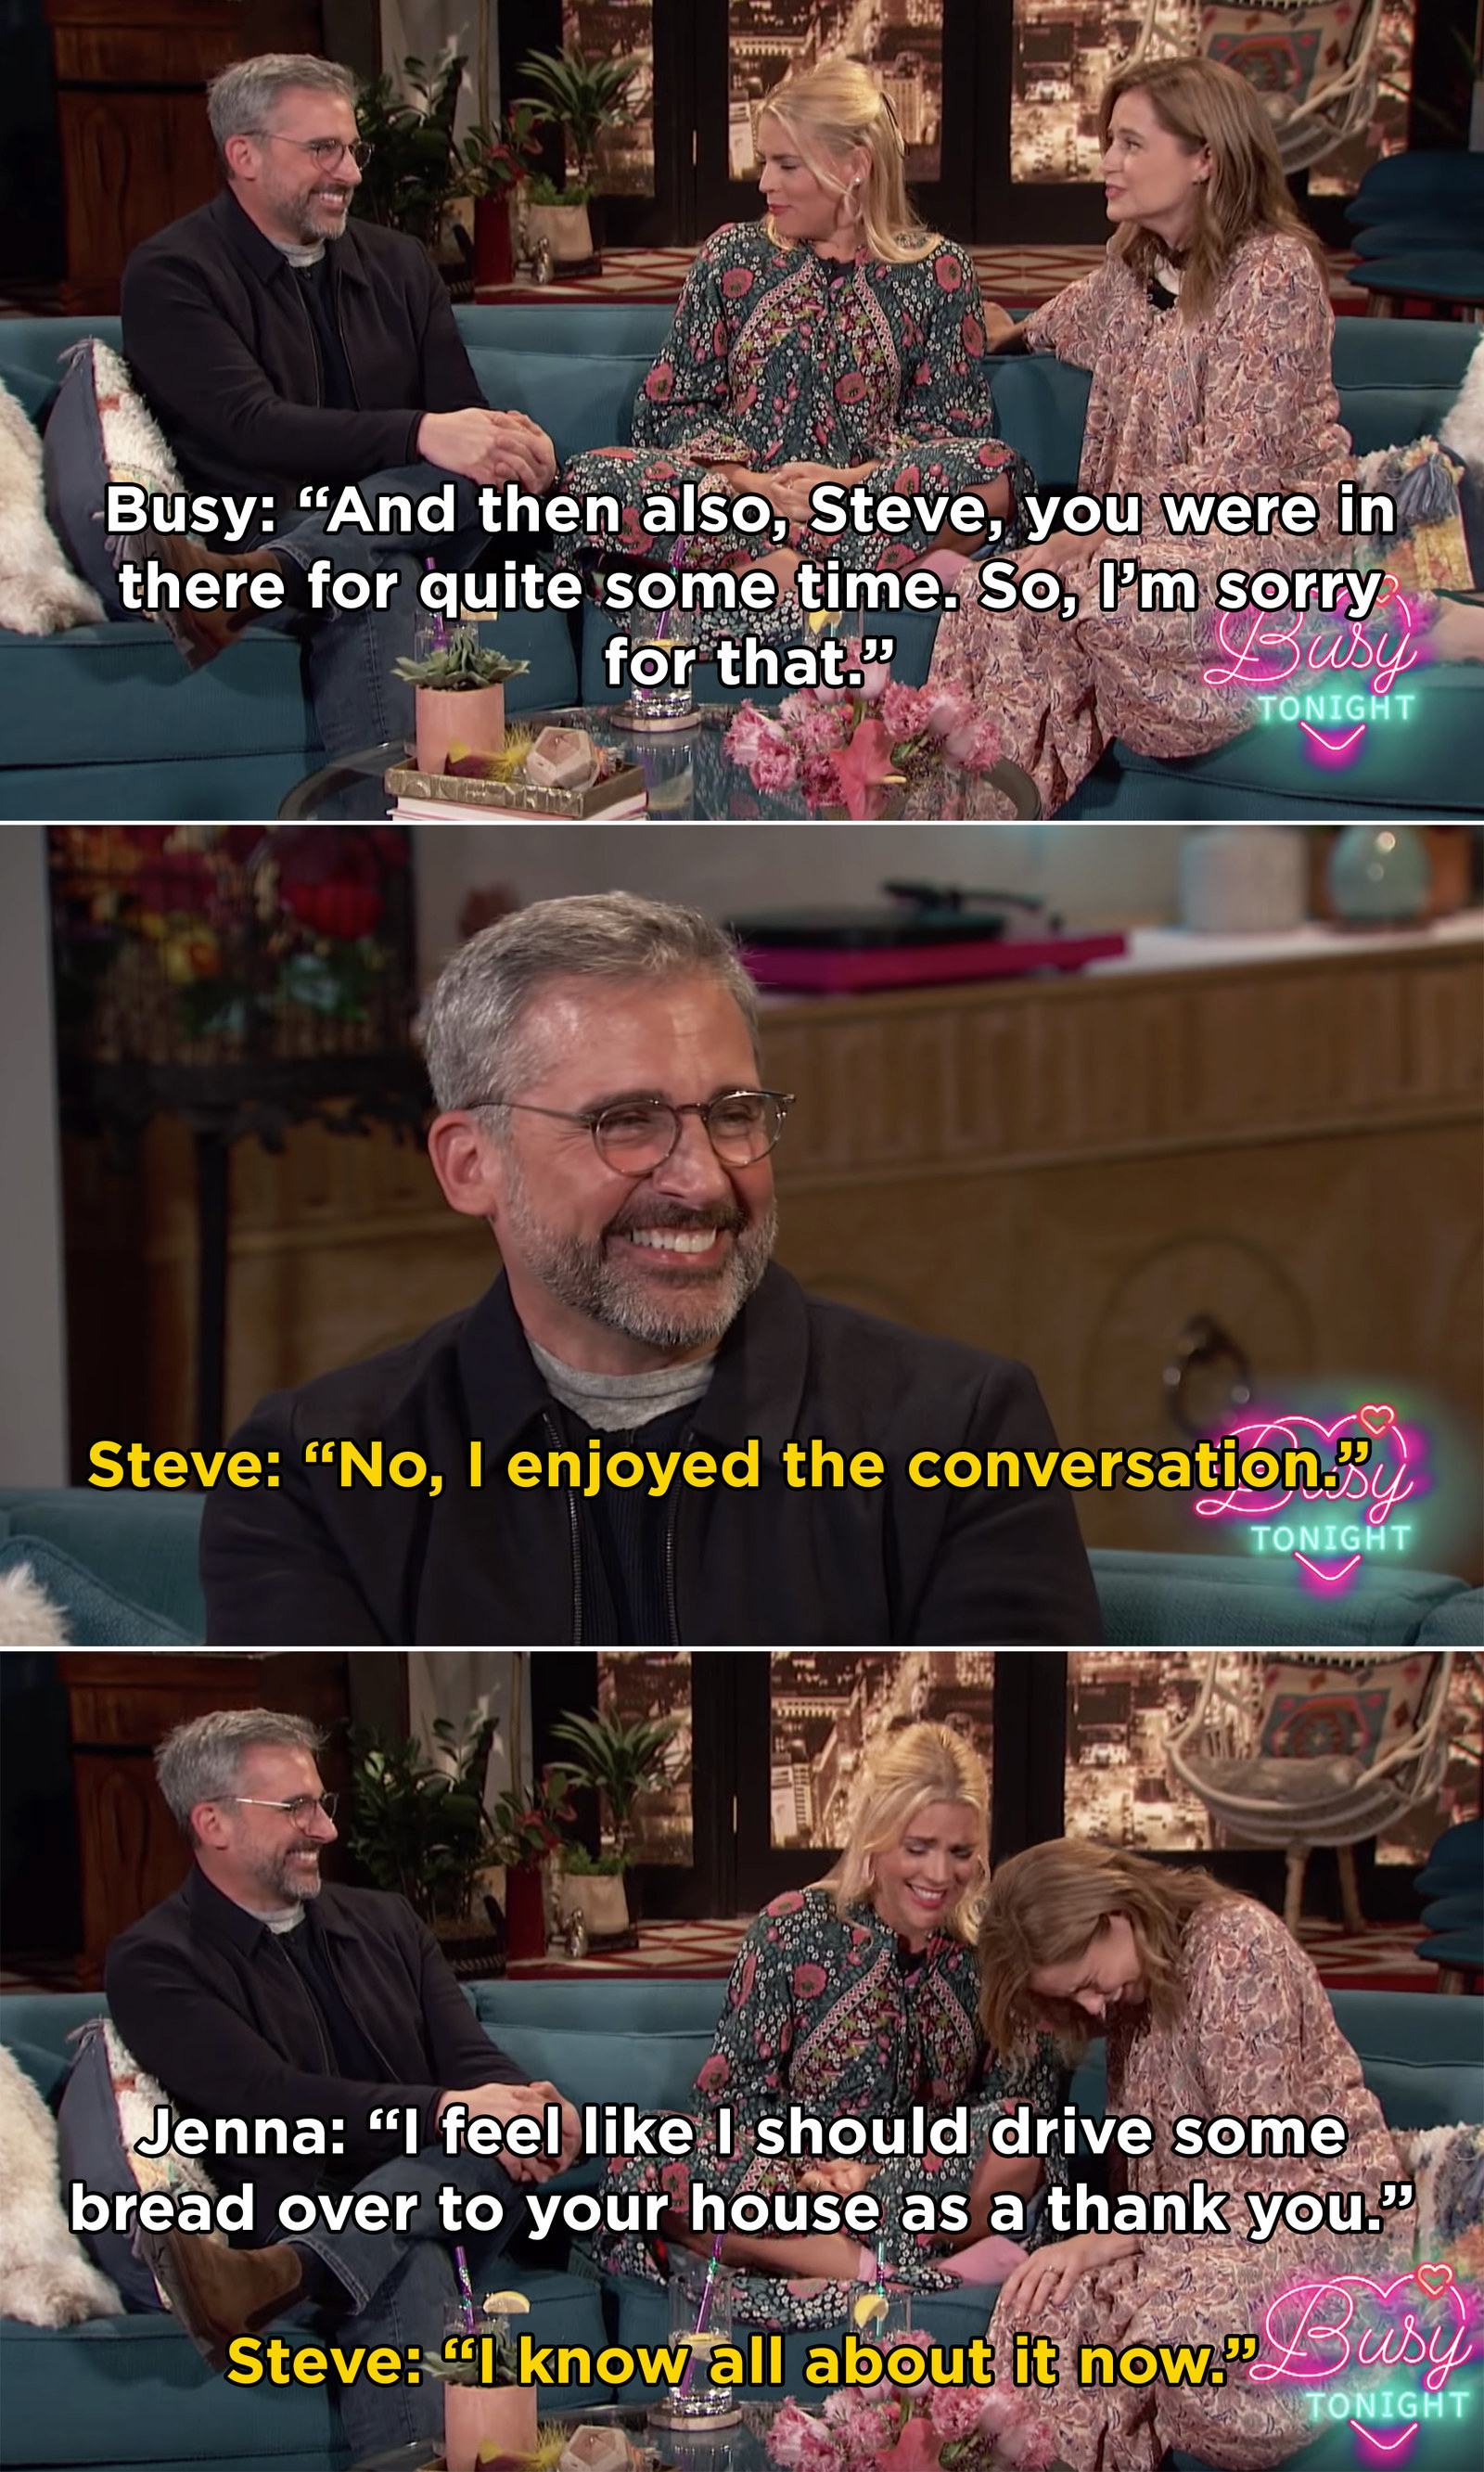 Also, Steve was crouched in that box for a heck of a long time while Busy and Jenna were chatting, which is hysterical.